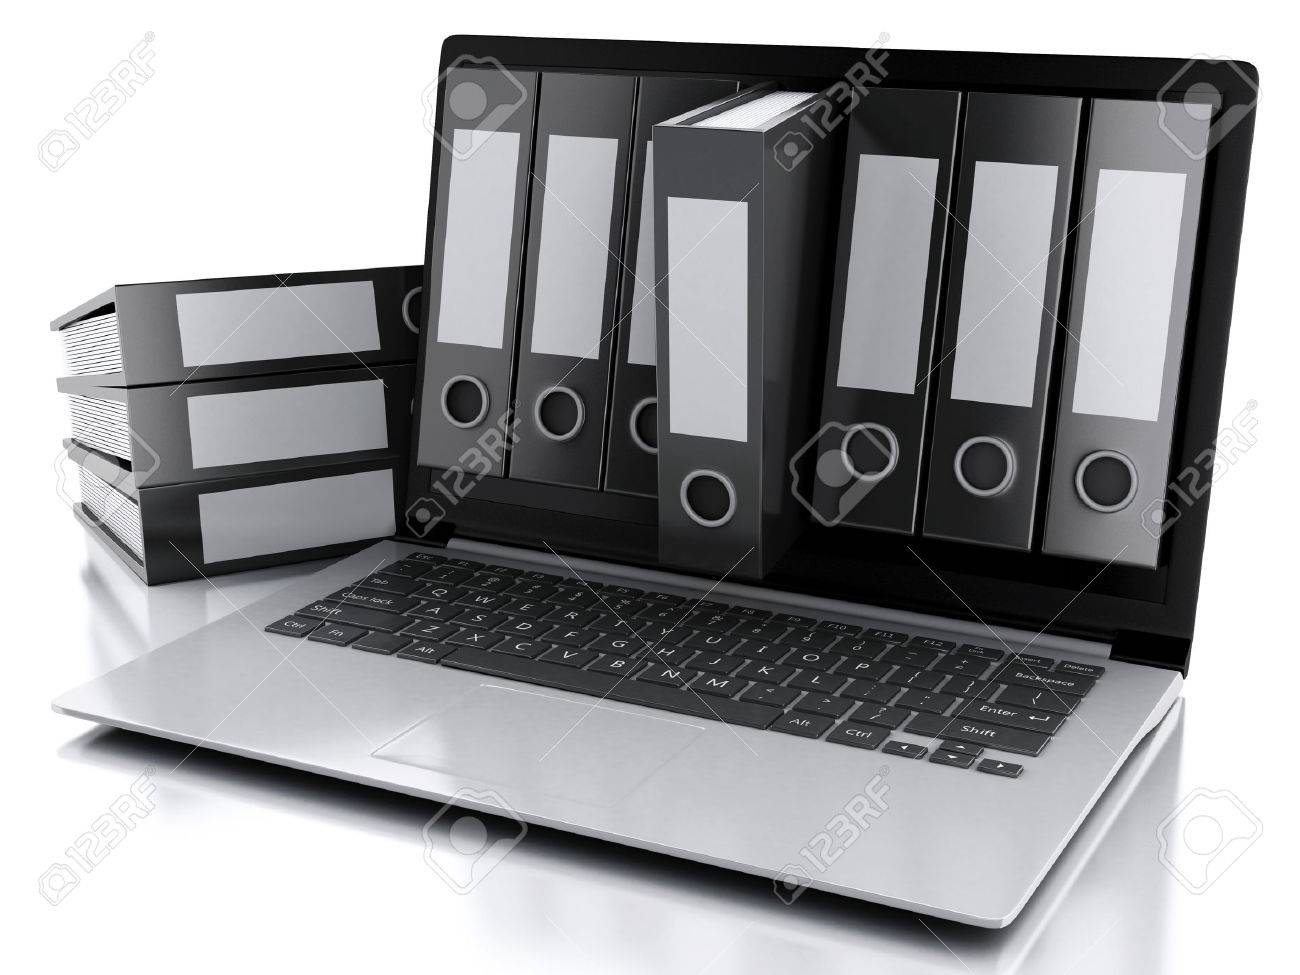 3d illustration. Archive concept. Laptop and files on isolated white background - 51684077